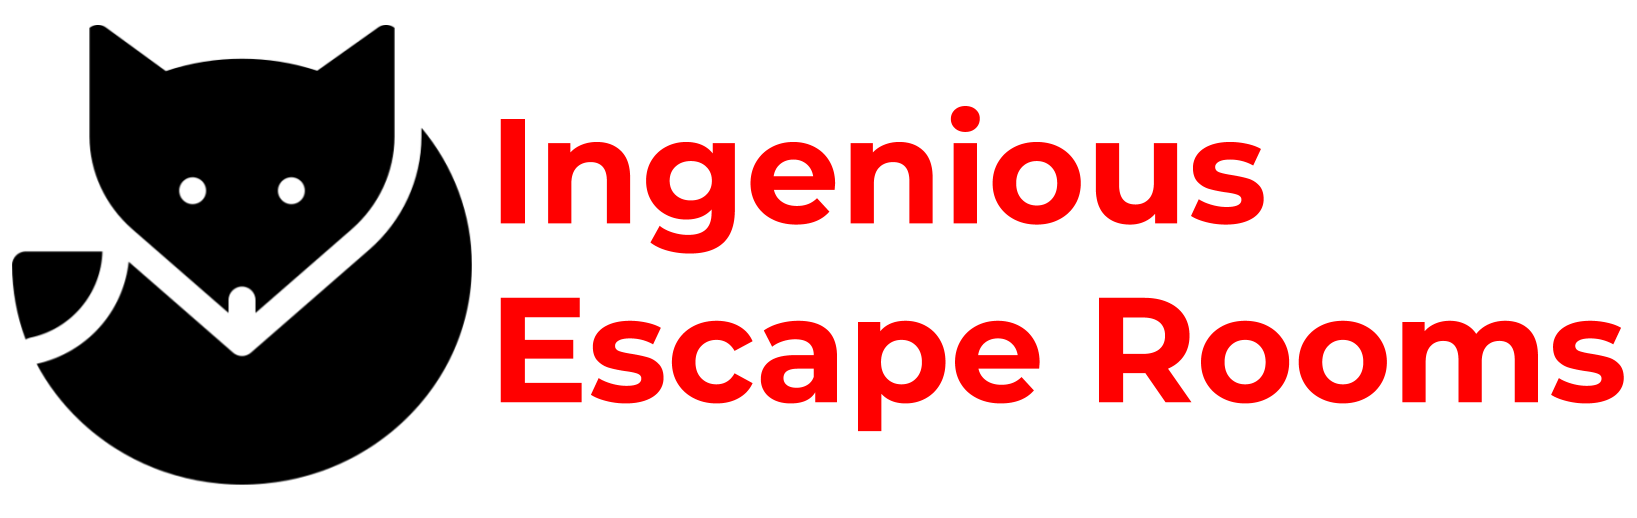 Ingenious Escape Rooms |   IMG_4246